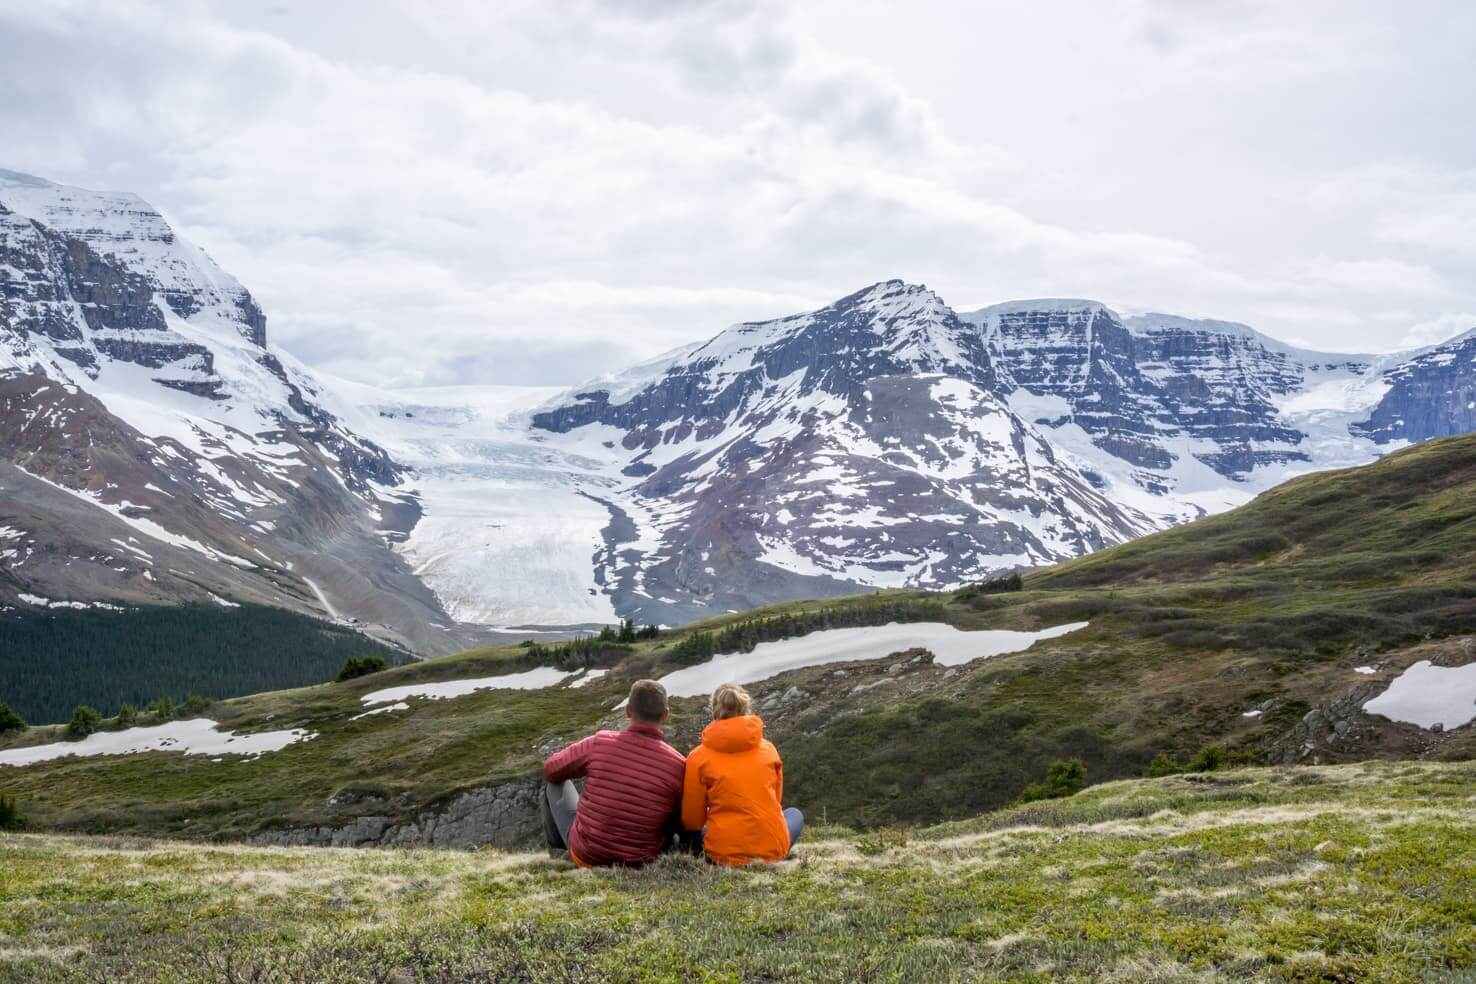 Things to do in Jasper National Park - 1 Get a bird's eye view of a giant glacier